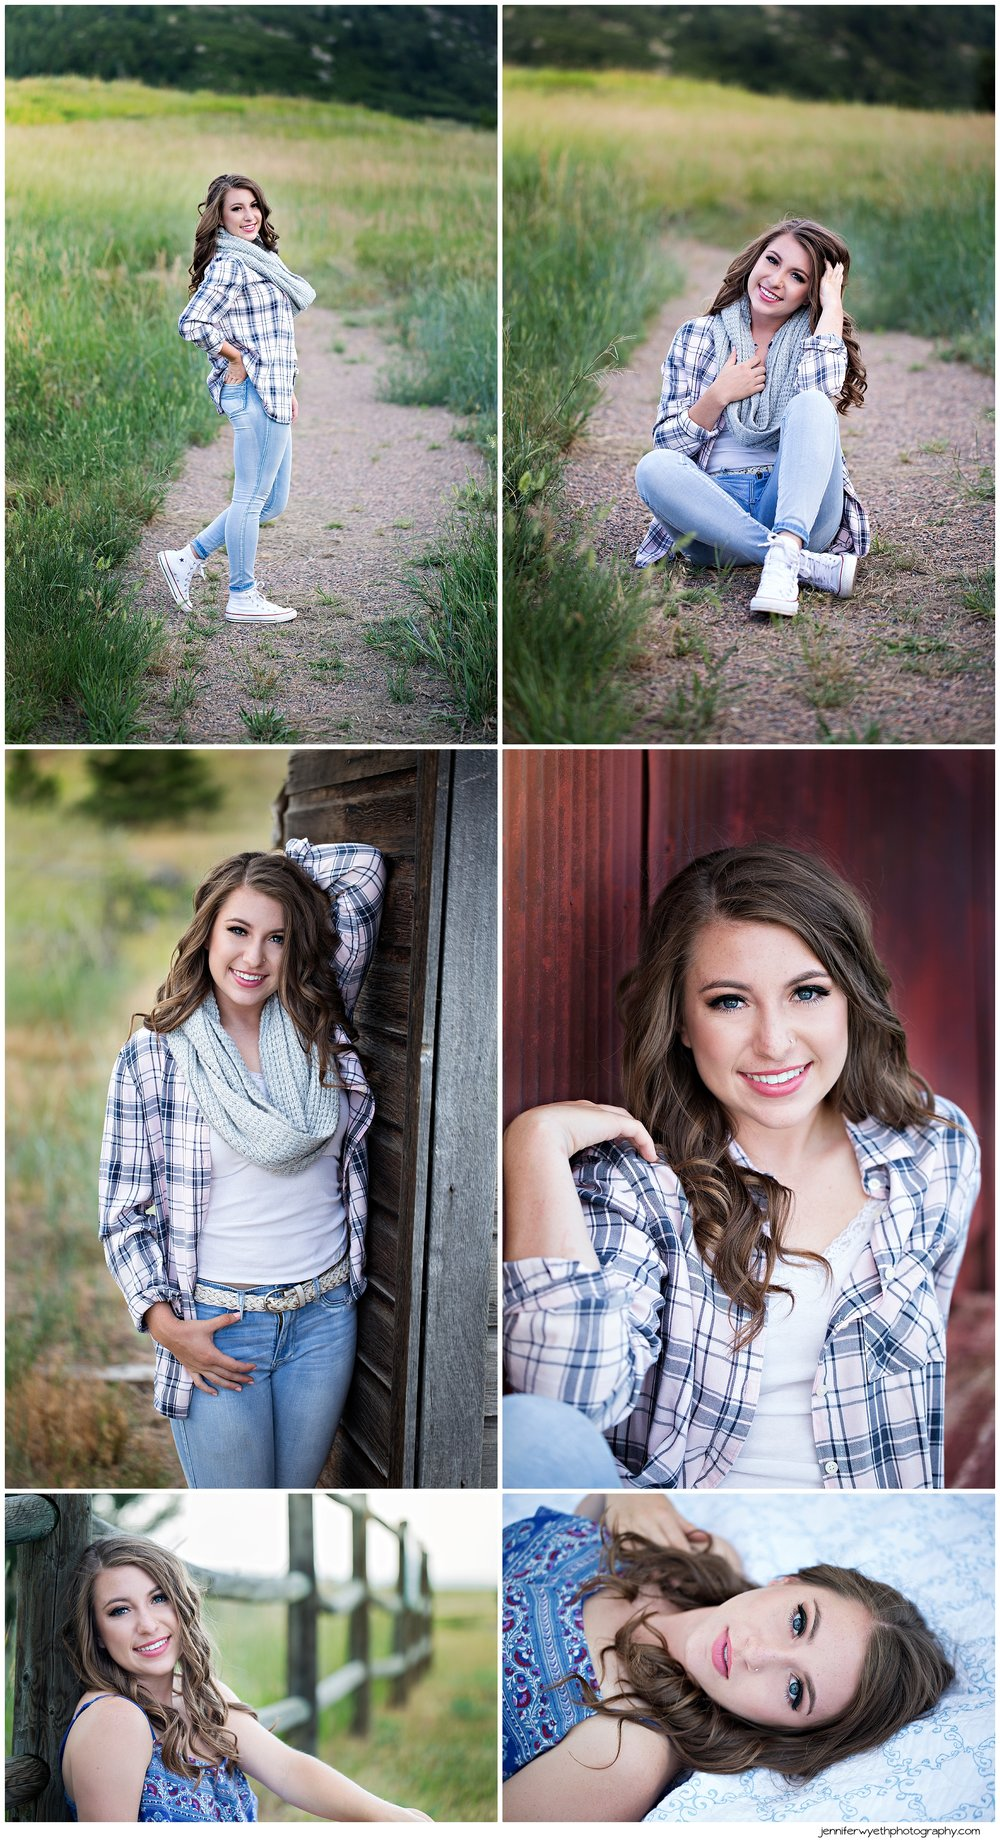 Jennifer-Wyeth-photography-senior-pictures-colorado-springs-photographer_0192.jpg